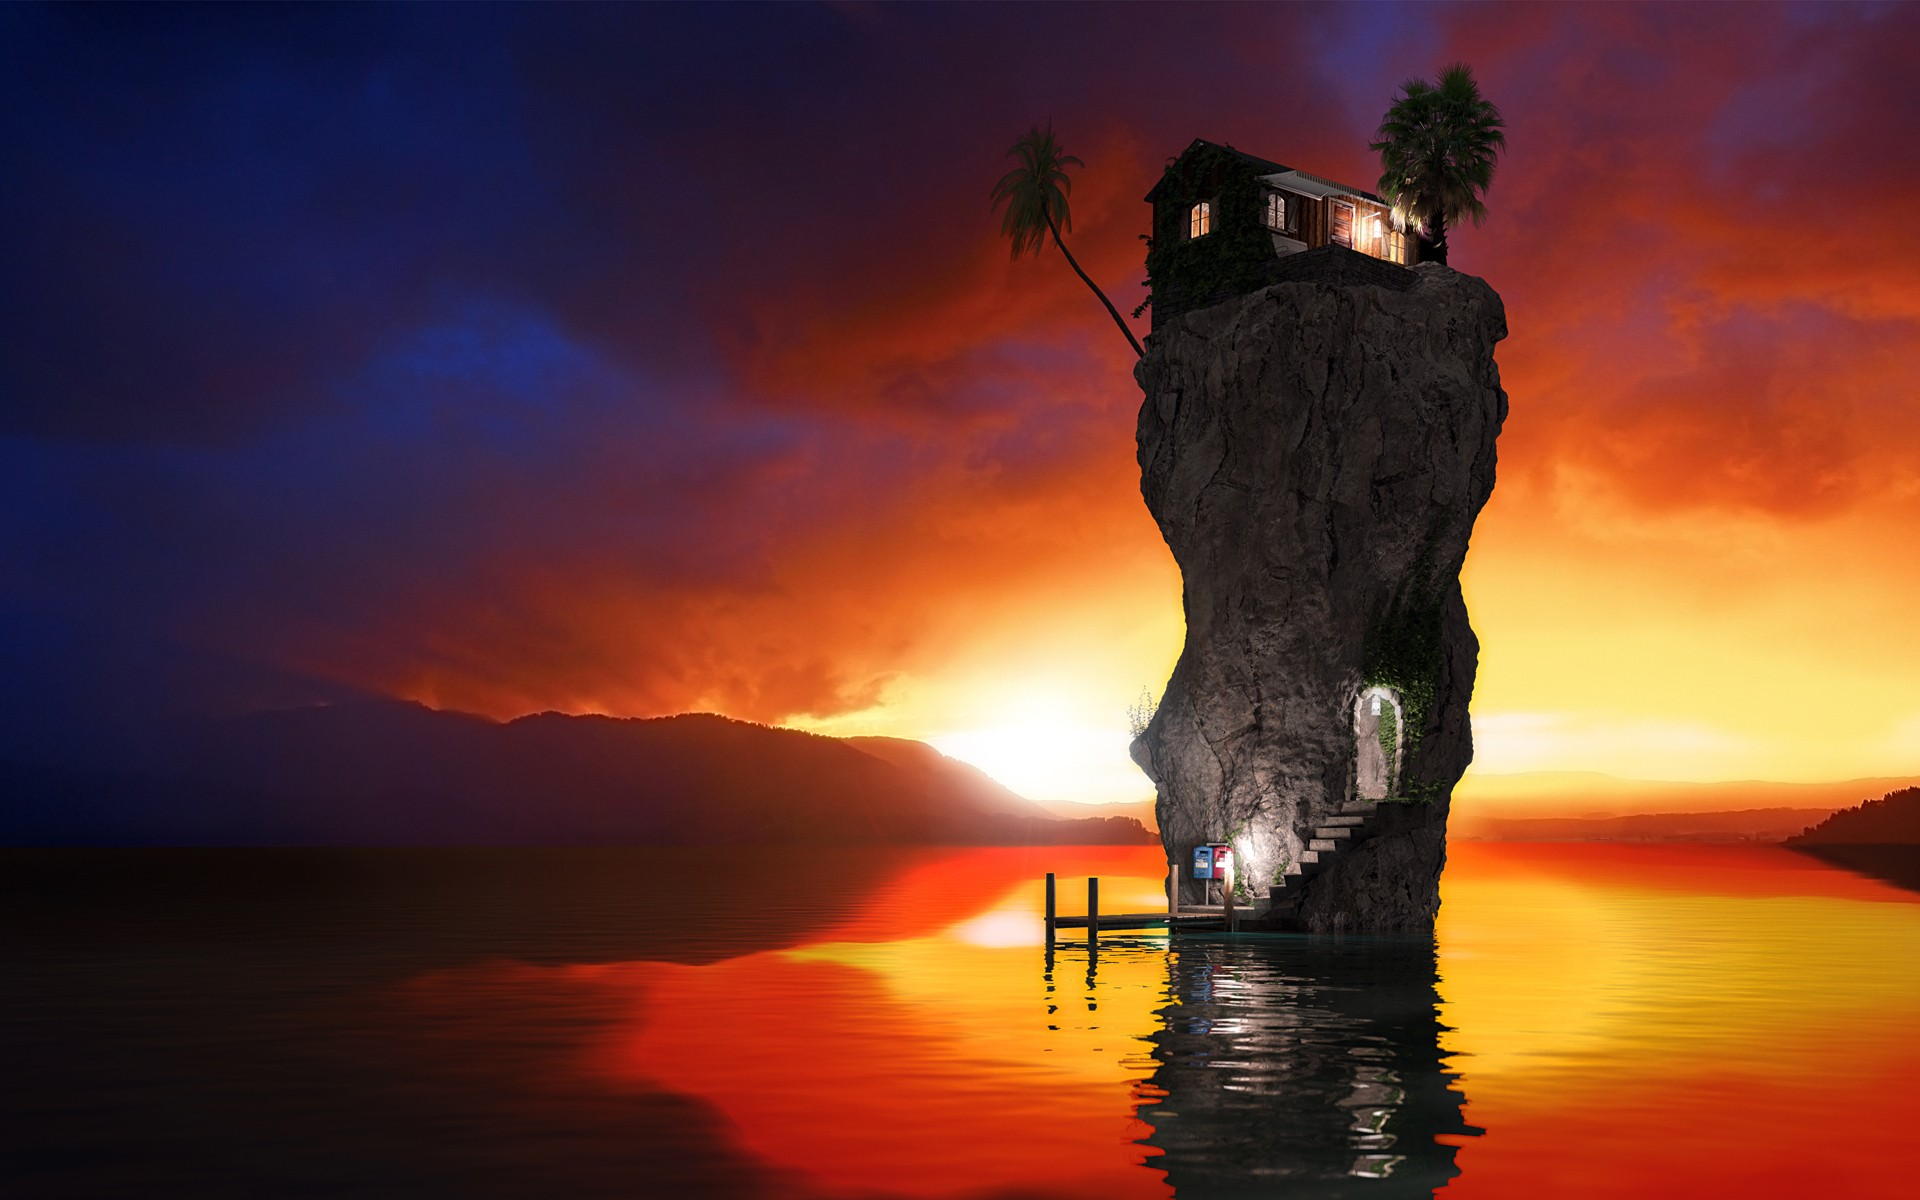 Water sunset houses rocks stairways palm trees reflections rendering